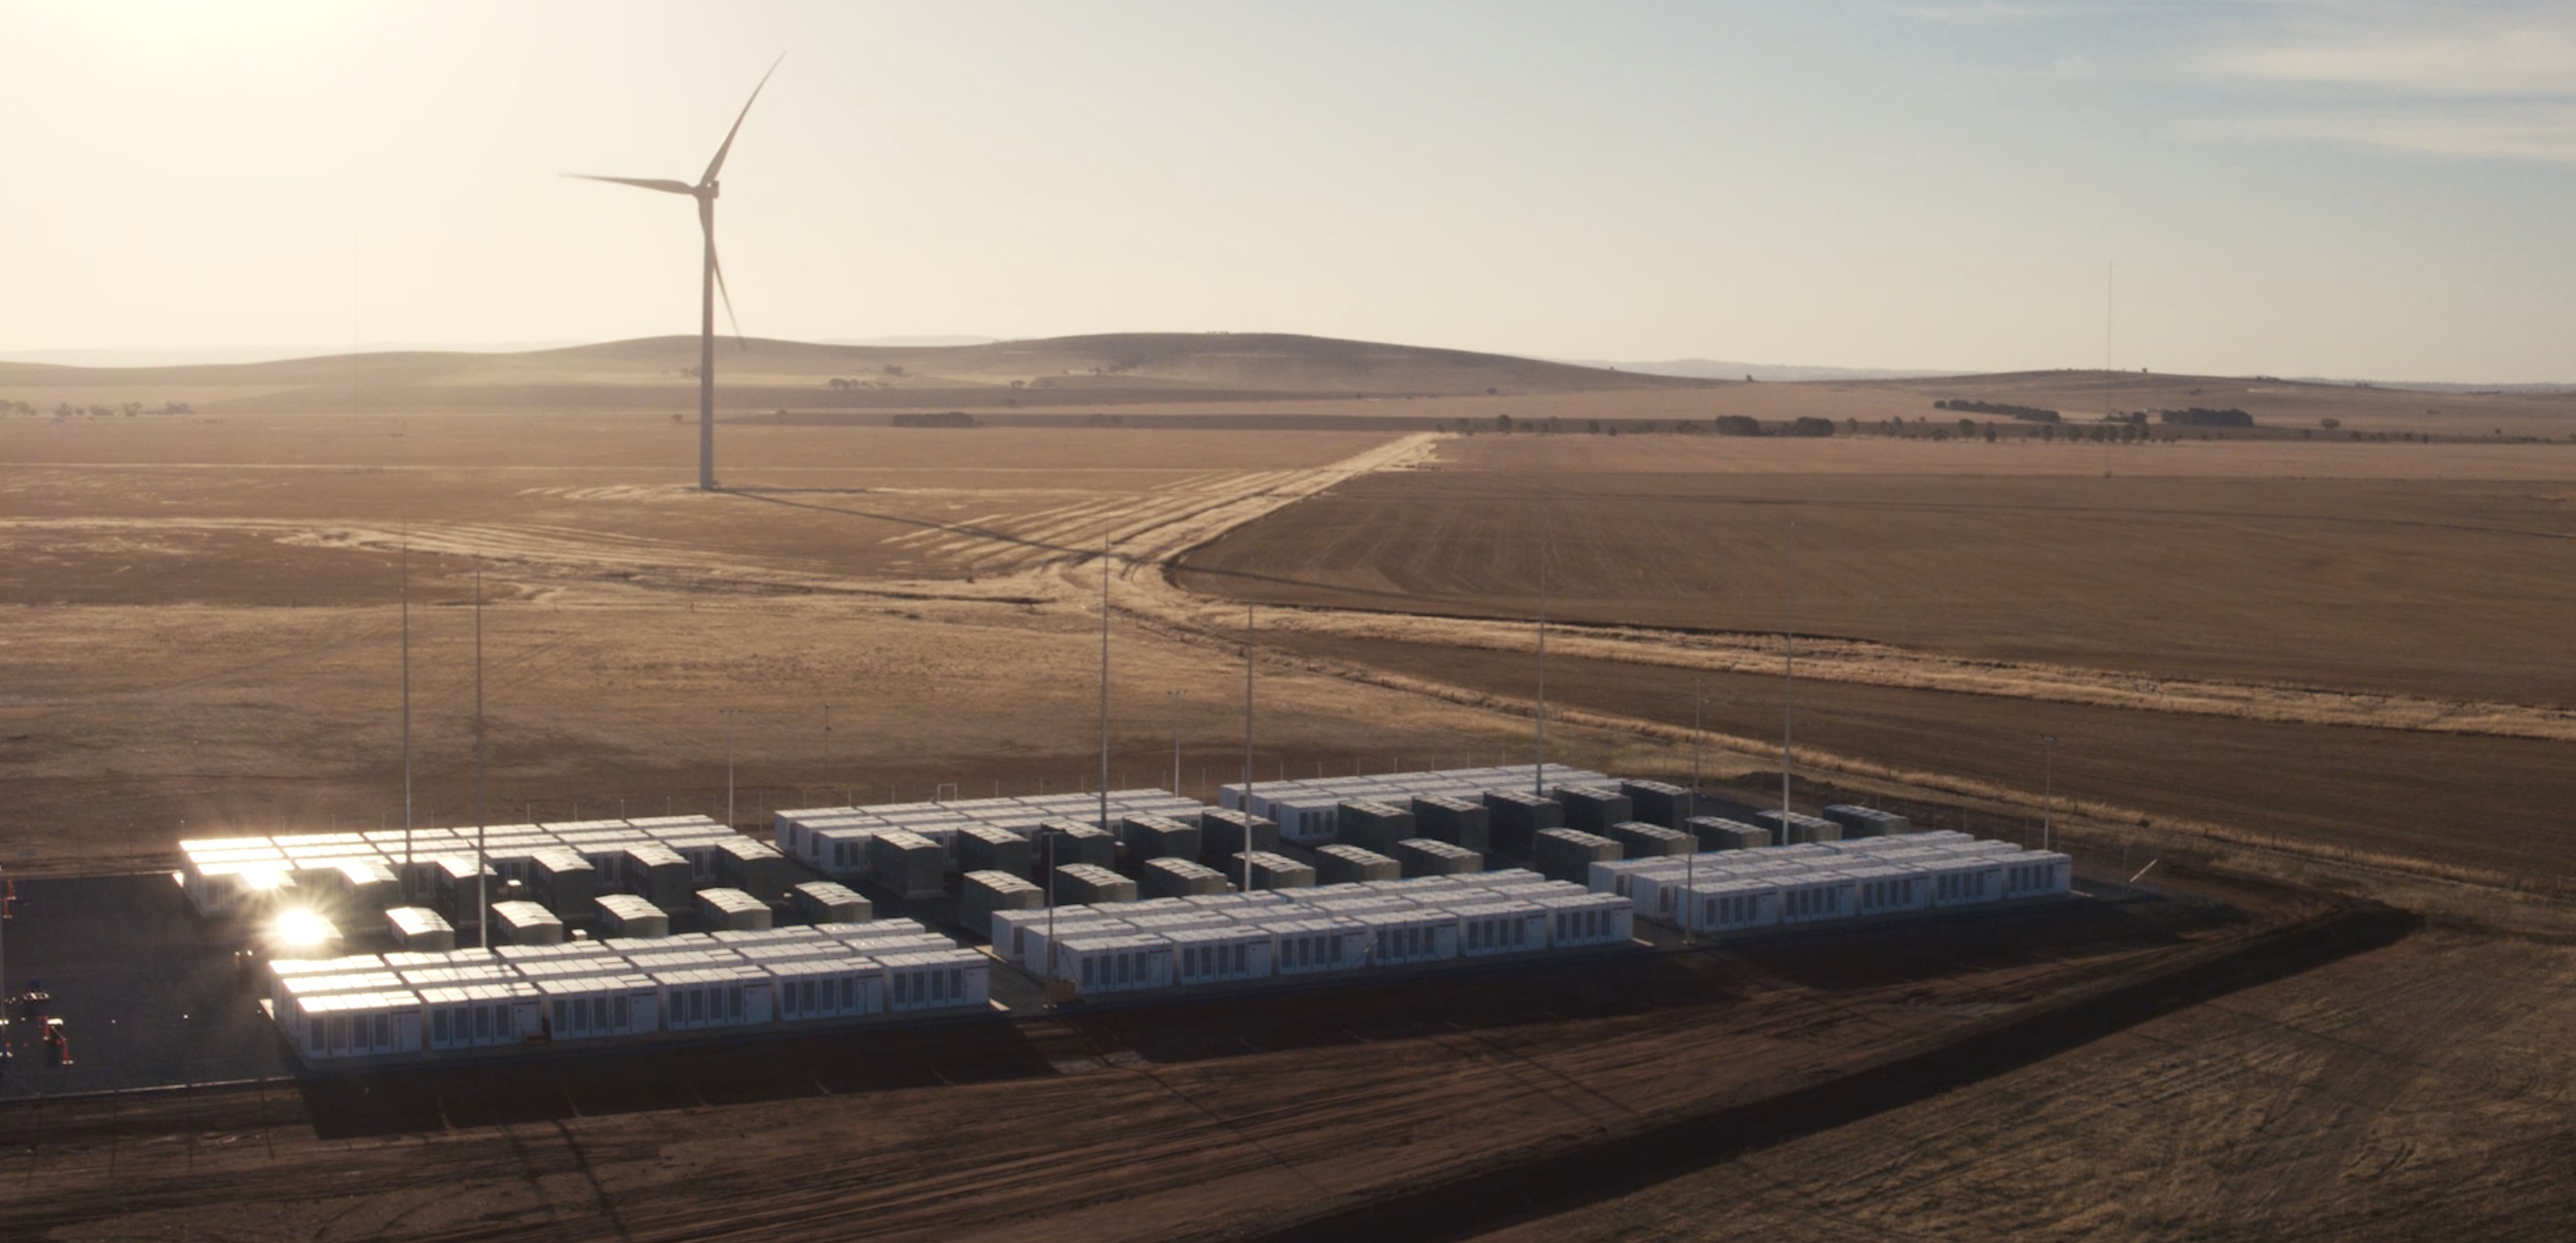 Tesla's massive Powerpack battery in Australia cost $66 million and already made up to ~$17 million